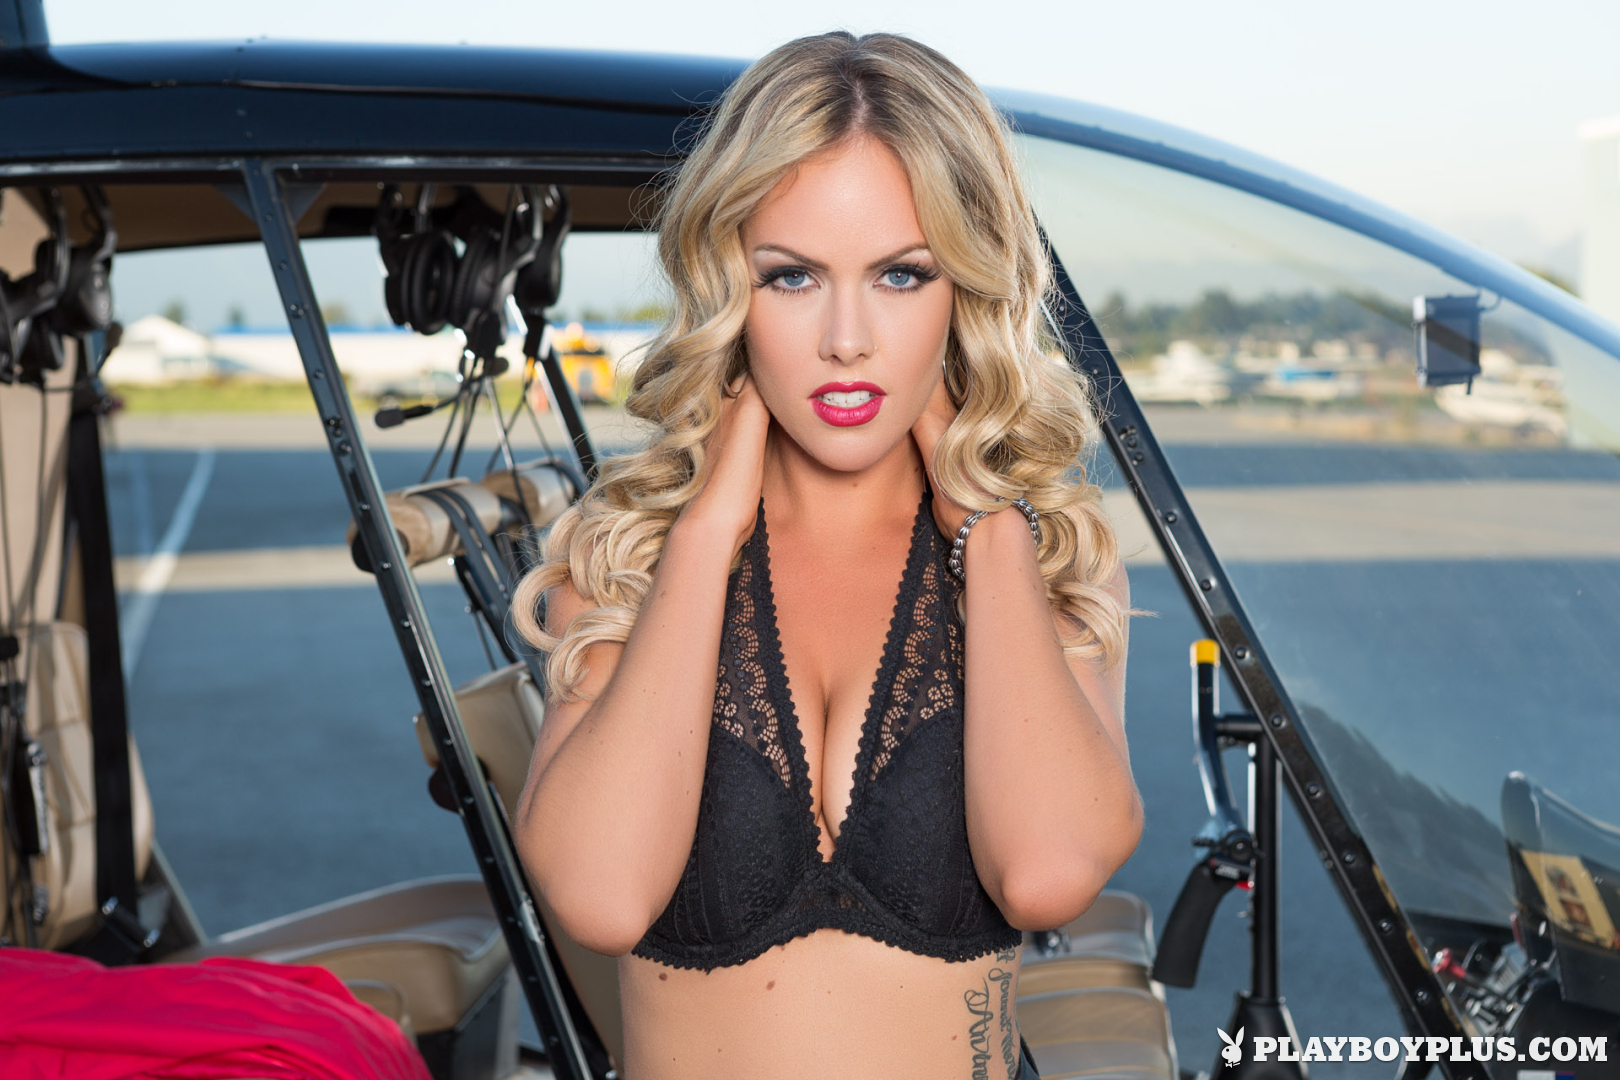 Playboy Cybergirl Heidi Michel posing nude with a helicopter